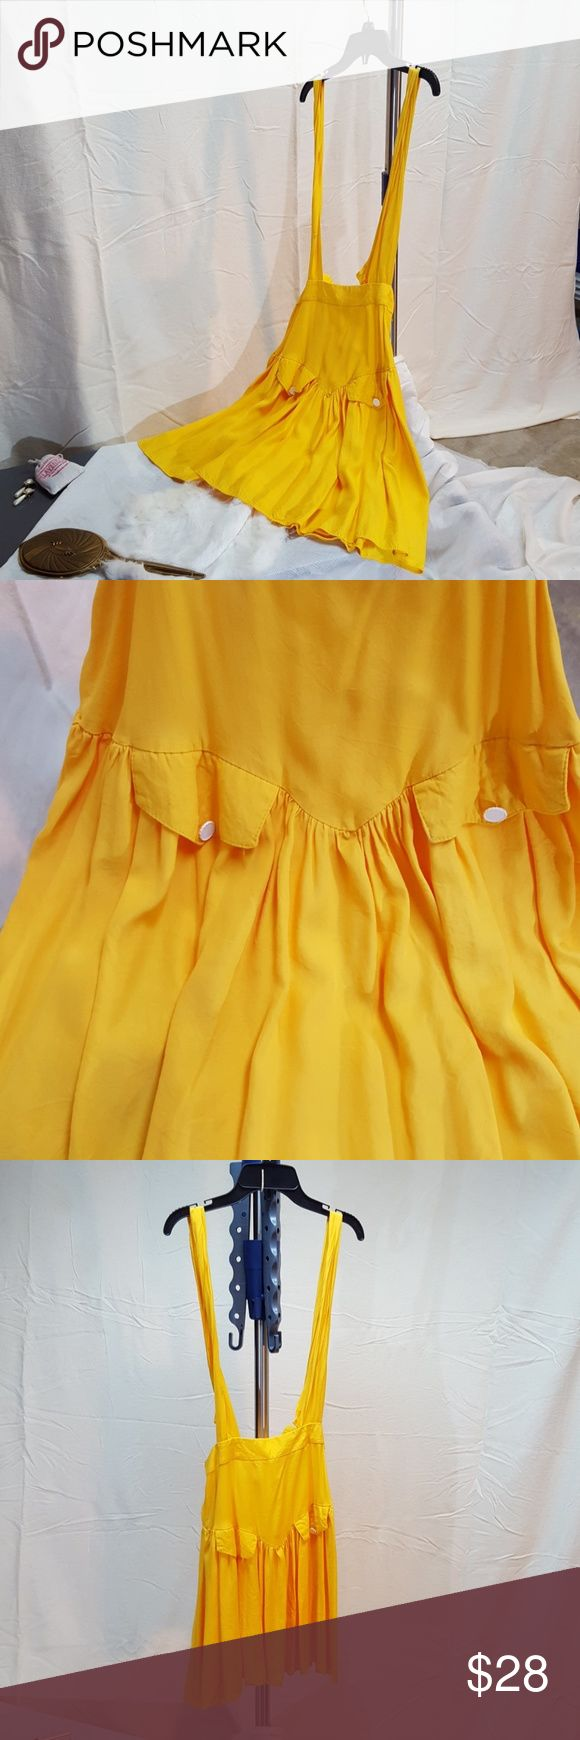 Vintage 80s Yellow Suspender Skirt Vintage yellow drop waist suspender skirt with faux pockets. A lively addition to any wardrobe, this skirt is a great color blocking option. Says size 13 but fits more like a 10/12. In great shape! Skirts Mini